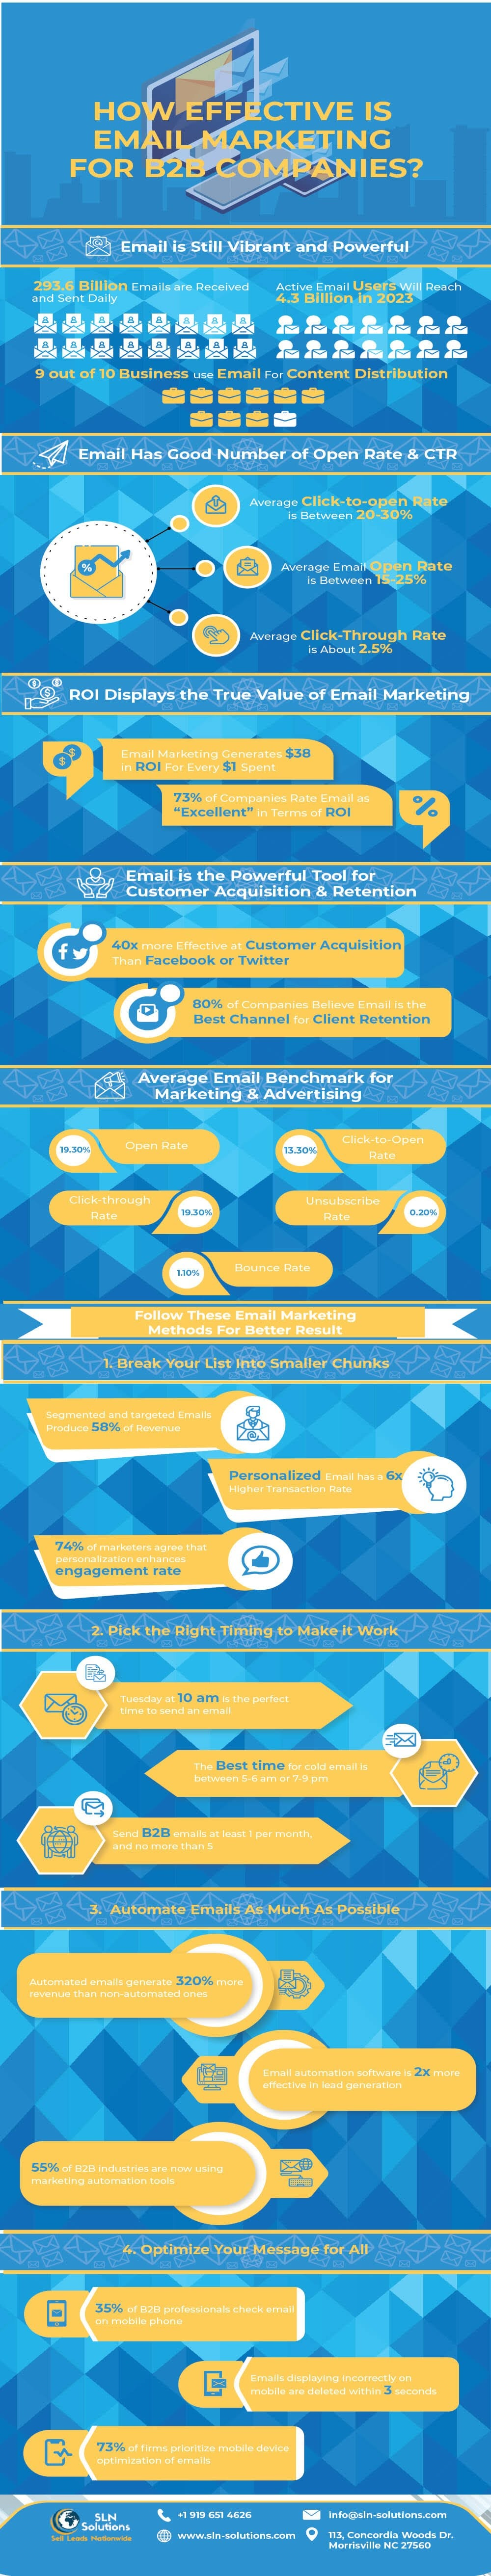 how-effective-is-email-marketing-for-b2b-companies-infographic